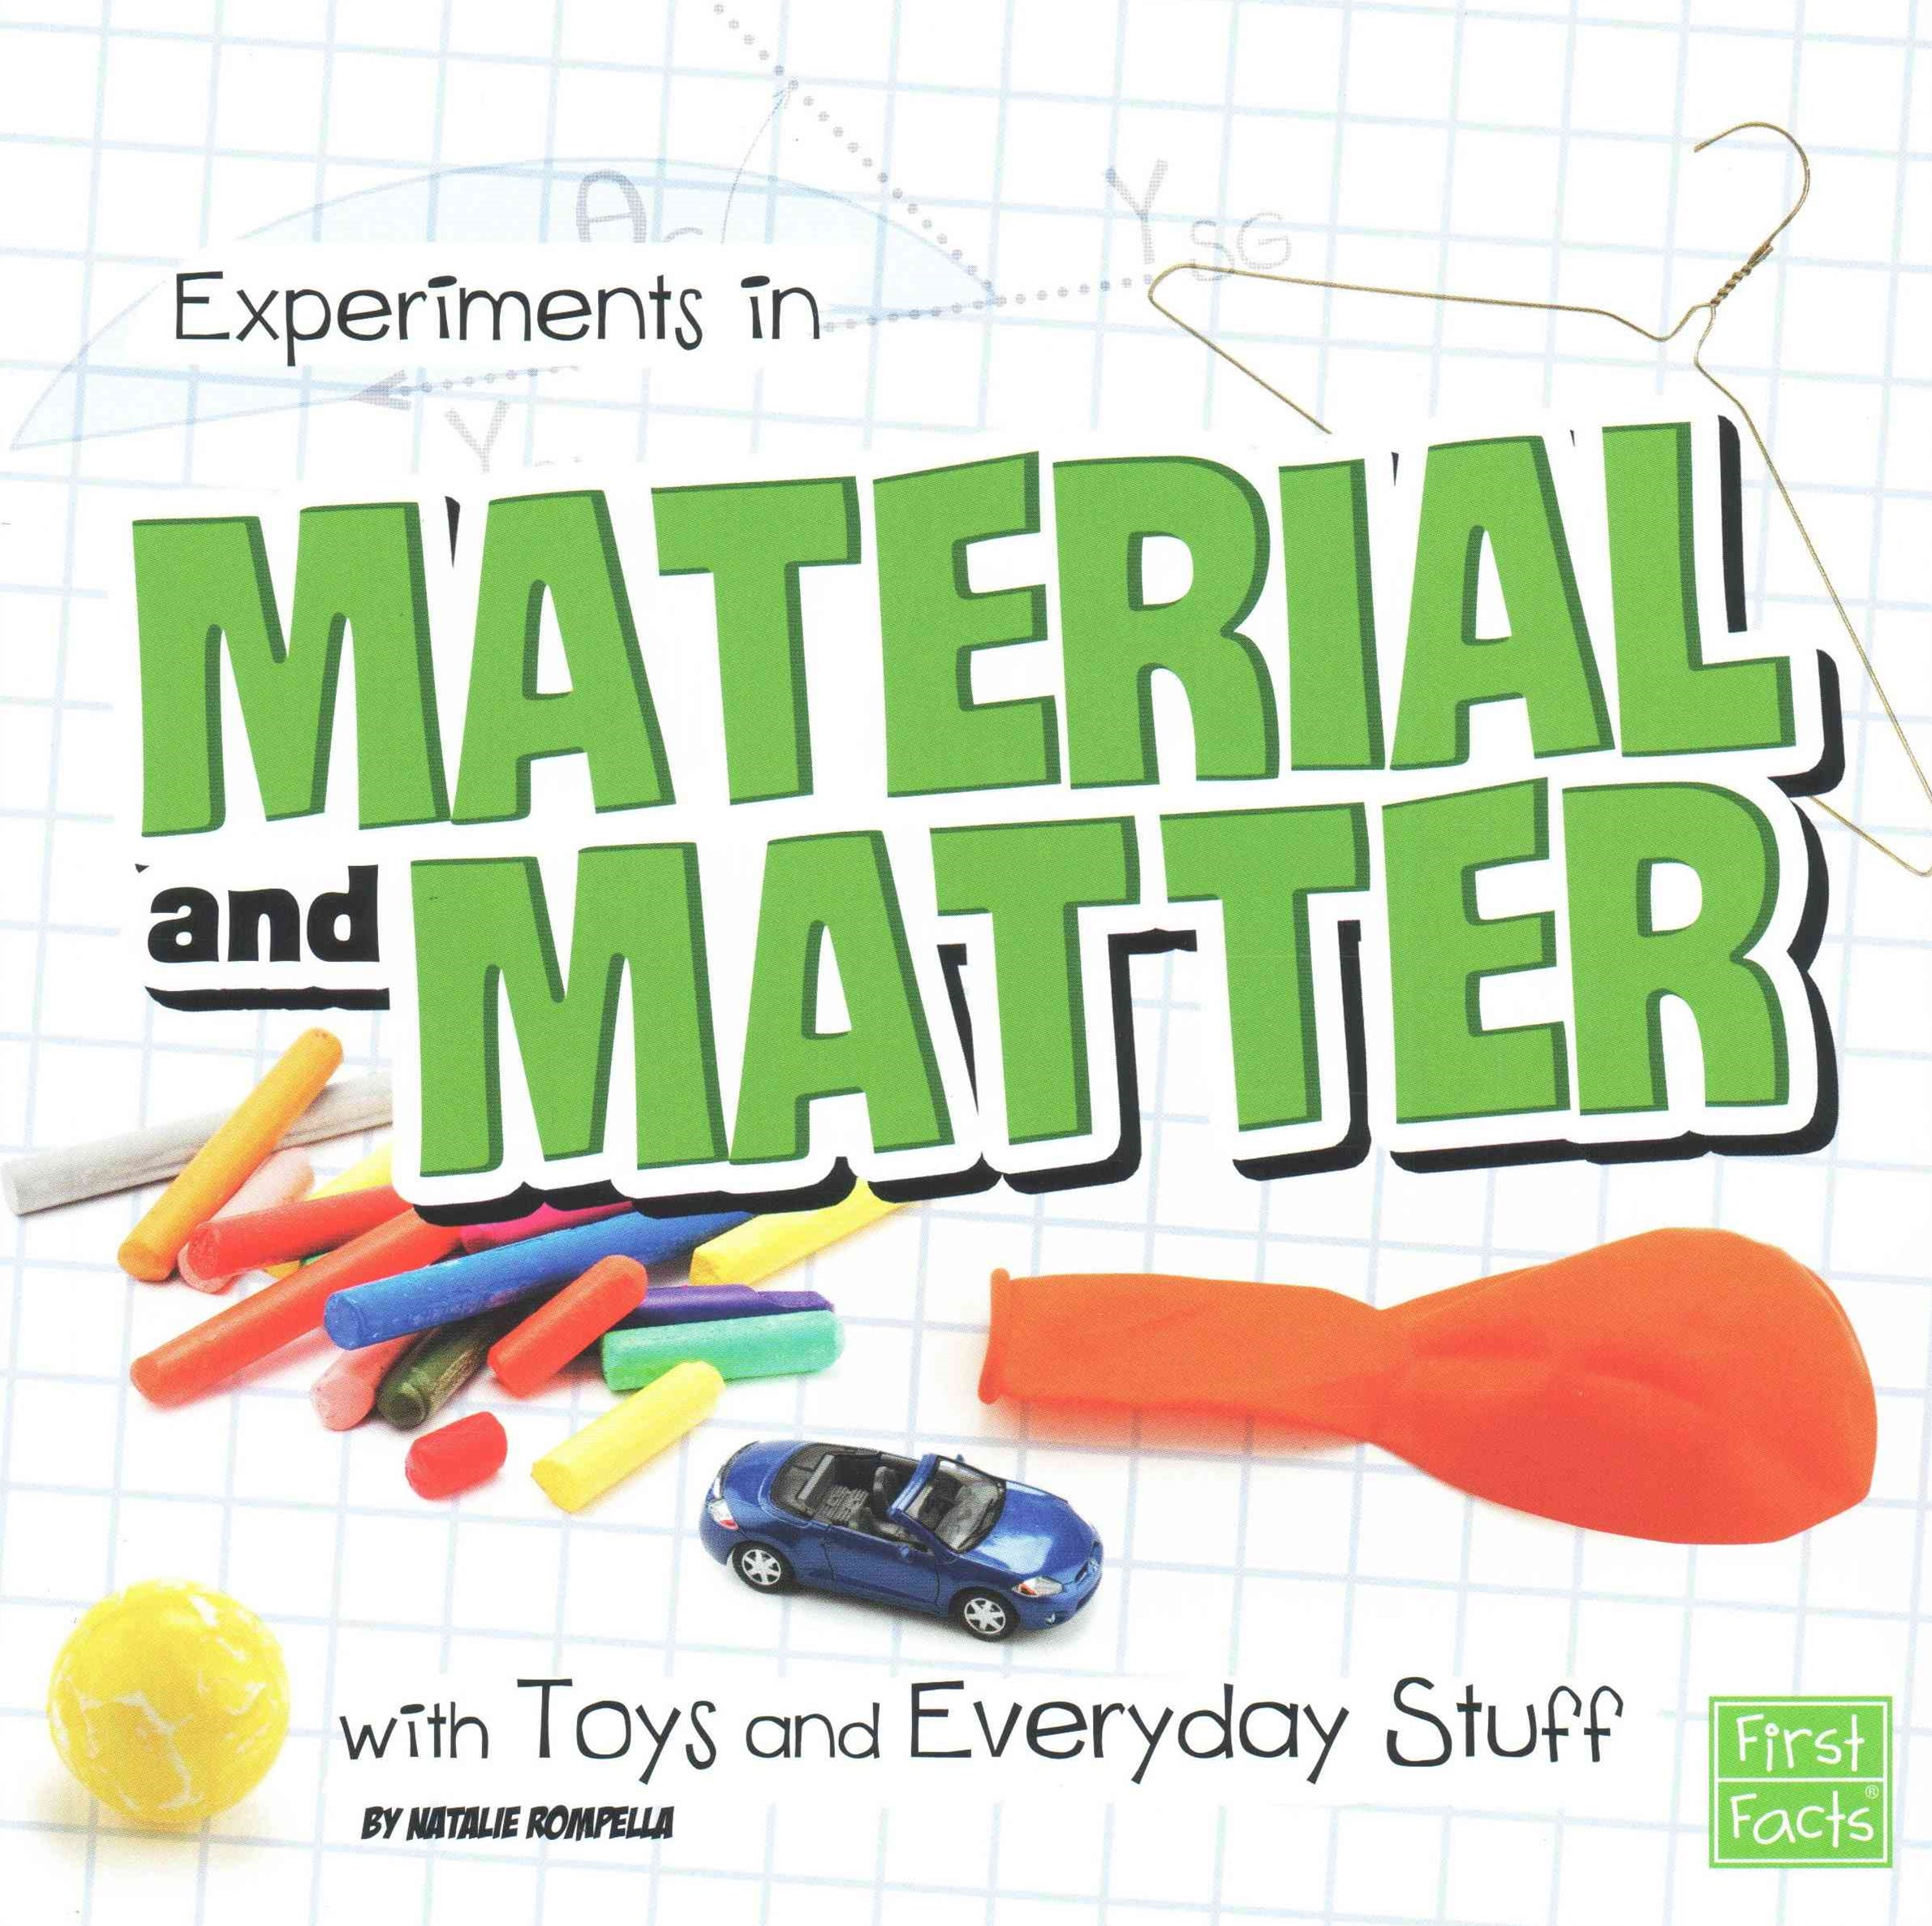 Experiments in Material and Matter with Toys and Everyday Stuff